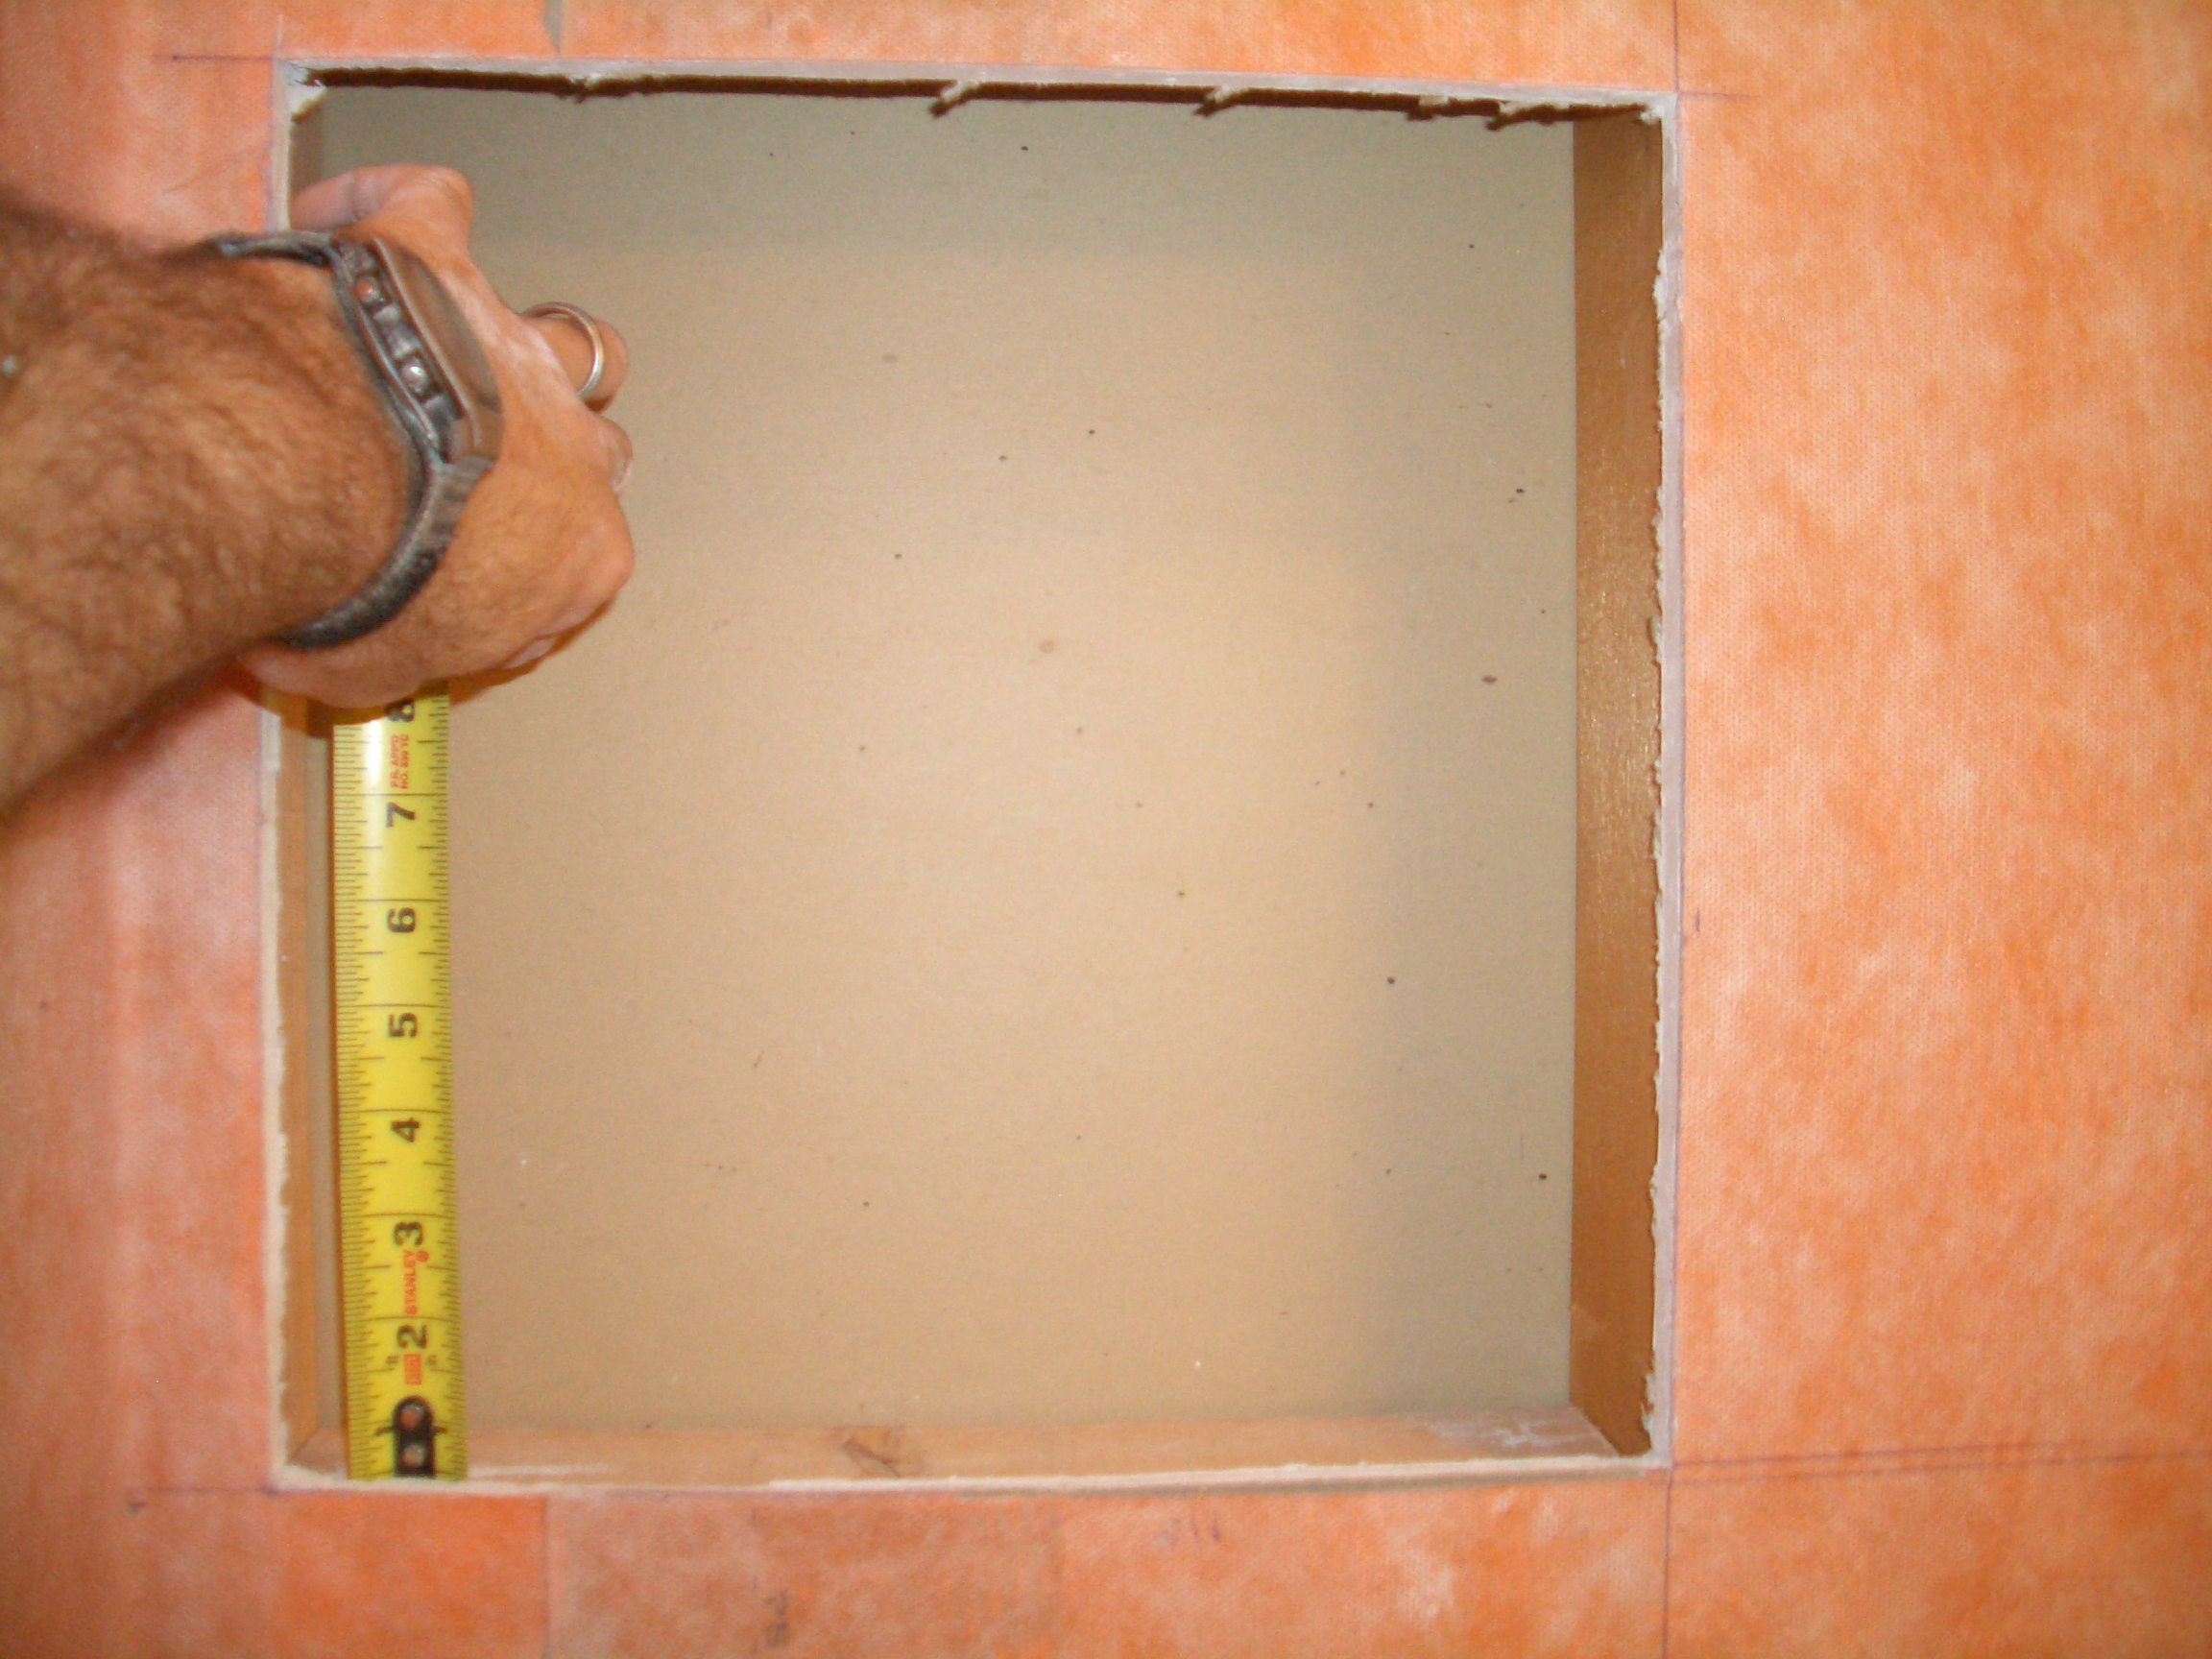 How to build a tiled shower tub - Top And Bottom Framing For Tiled Shower Niche